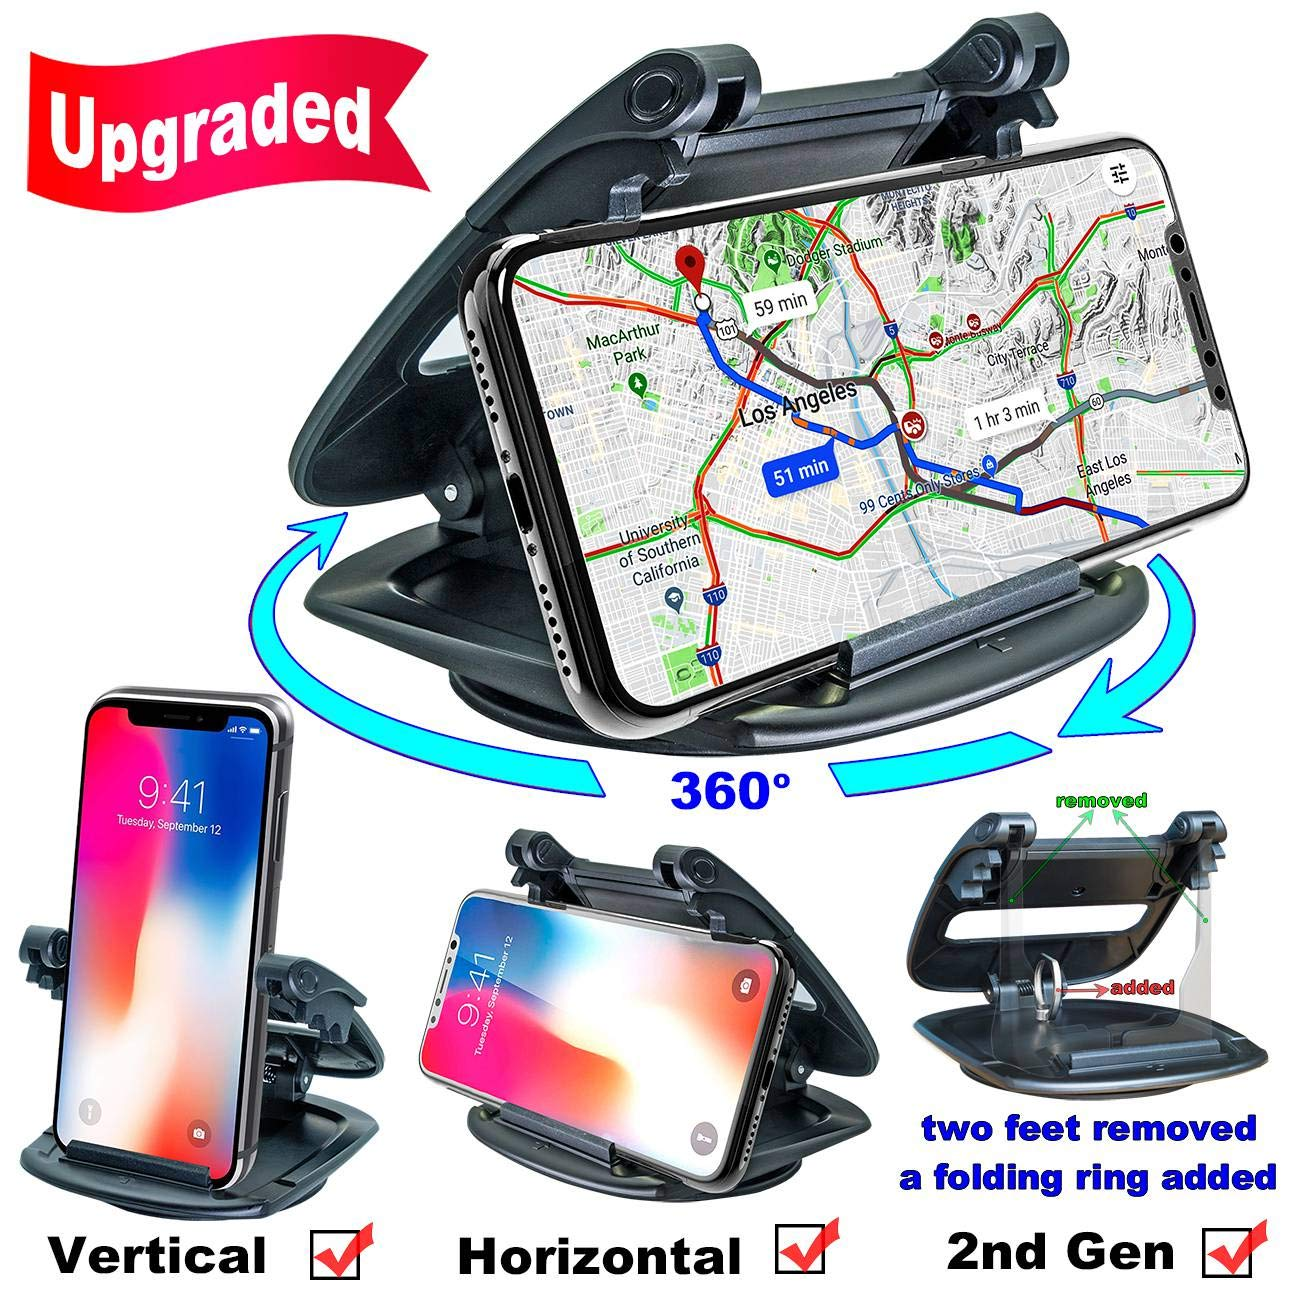 Cell Phone Holder for Car Dashboard, Car Phone Mount Silicone Anti-Slip Dash Pad, GPS Holder Car Phone Mounting in Pickup Truck Compatible iPhone Xs Max XR X 6S 7 8 Plus Samsung Galaxy Note 9 S9 Pixel